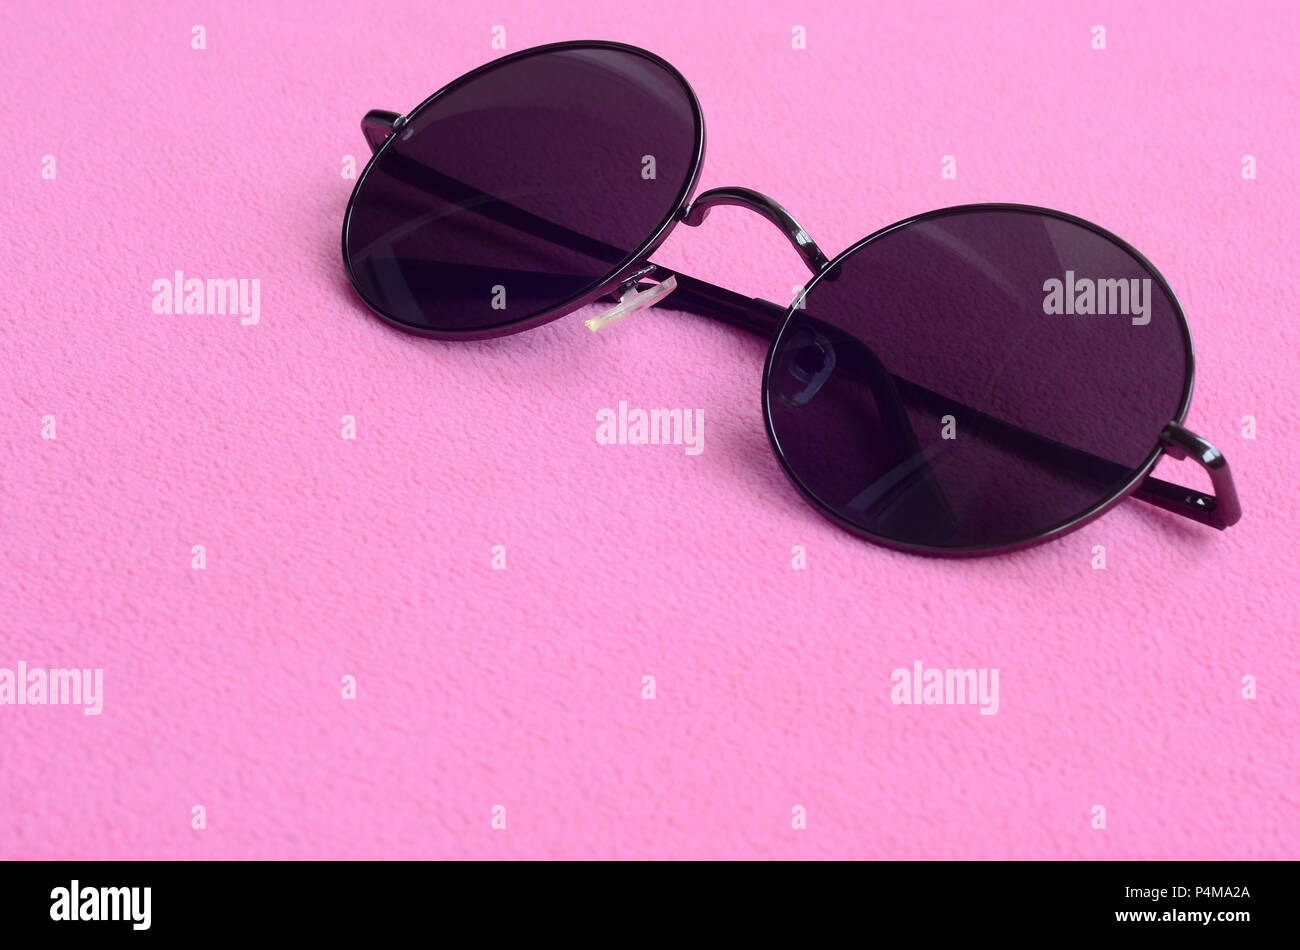 de2606bb5d93 Stylish black sunglasses with round glasses lies on a blanket made of soft  and fluffy light pink fleece fabric. Fashionable background picture in fema